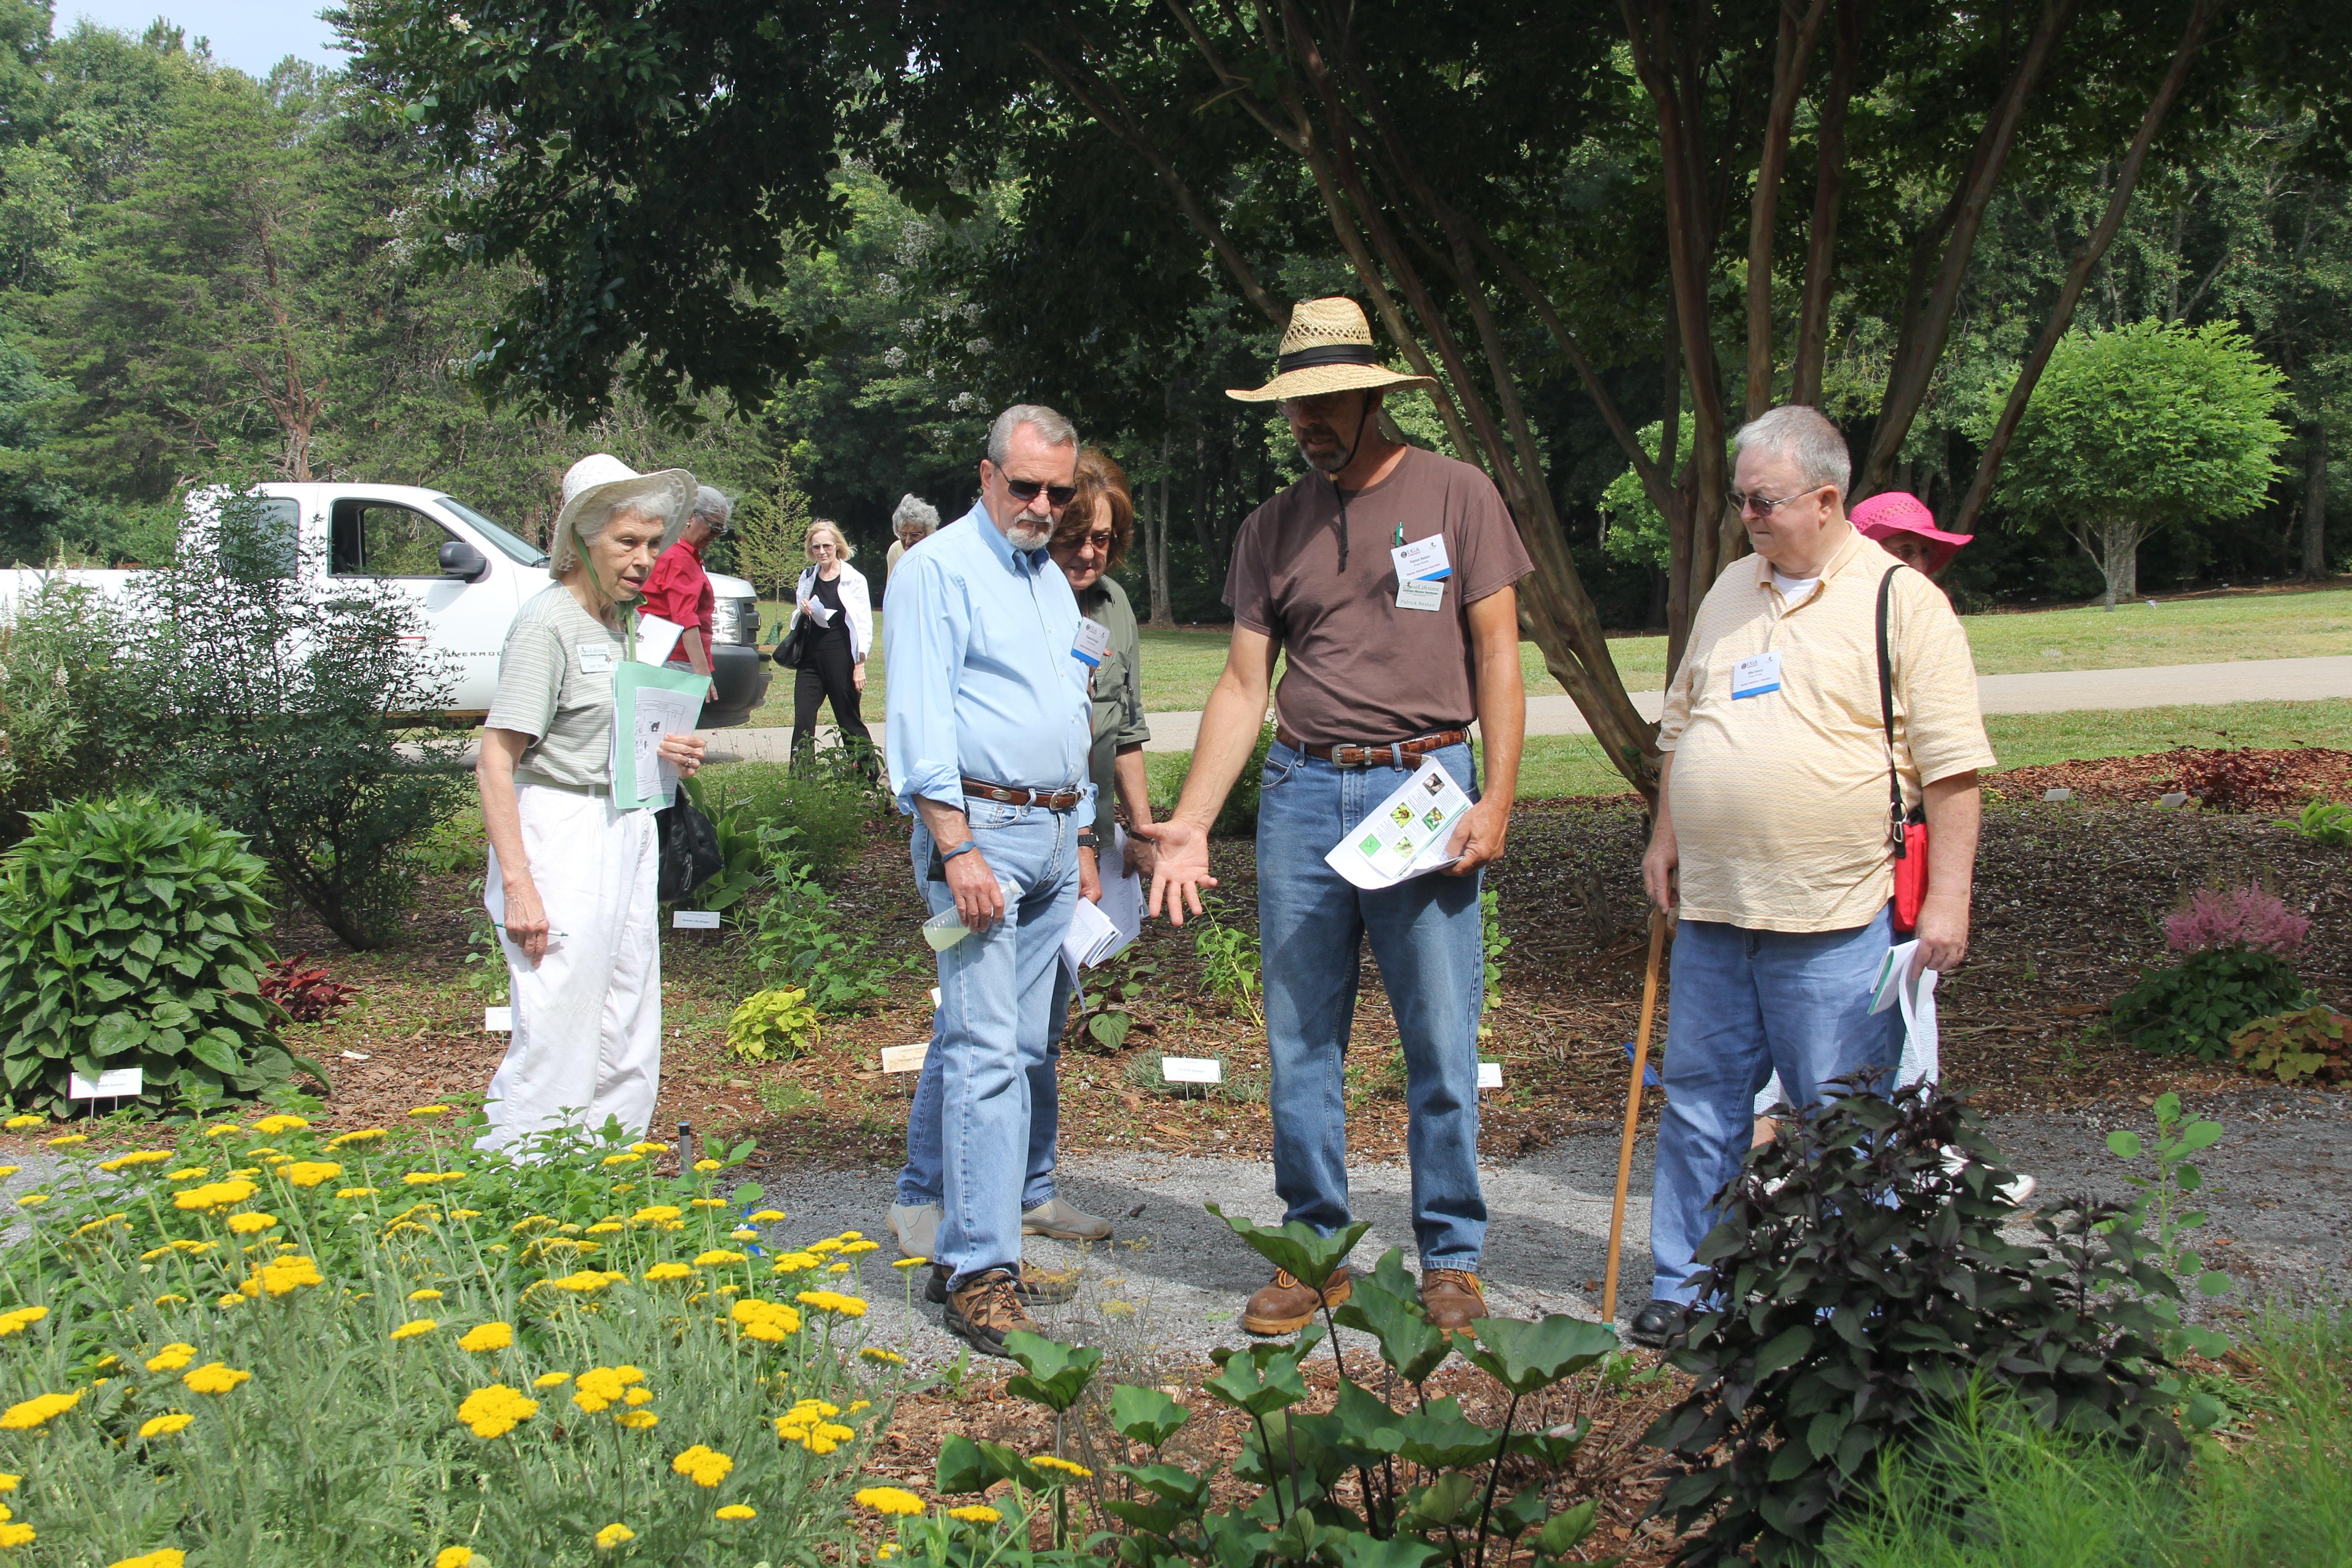 Georgia's Master Gardener Extension Volunteers were invited to the University of Georgia's campus in Griffin on June 5 for a 35th Anniversary celebration. In true form, the volunteers spent the day learning from UGA experts so they can continue to help educate the public on the latest research-based information.